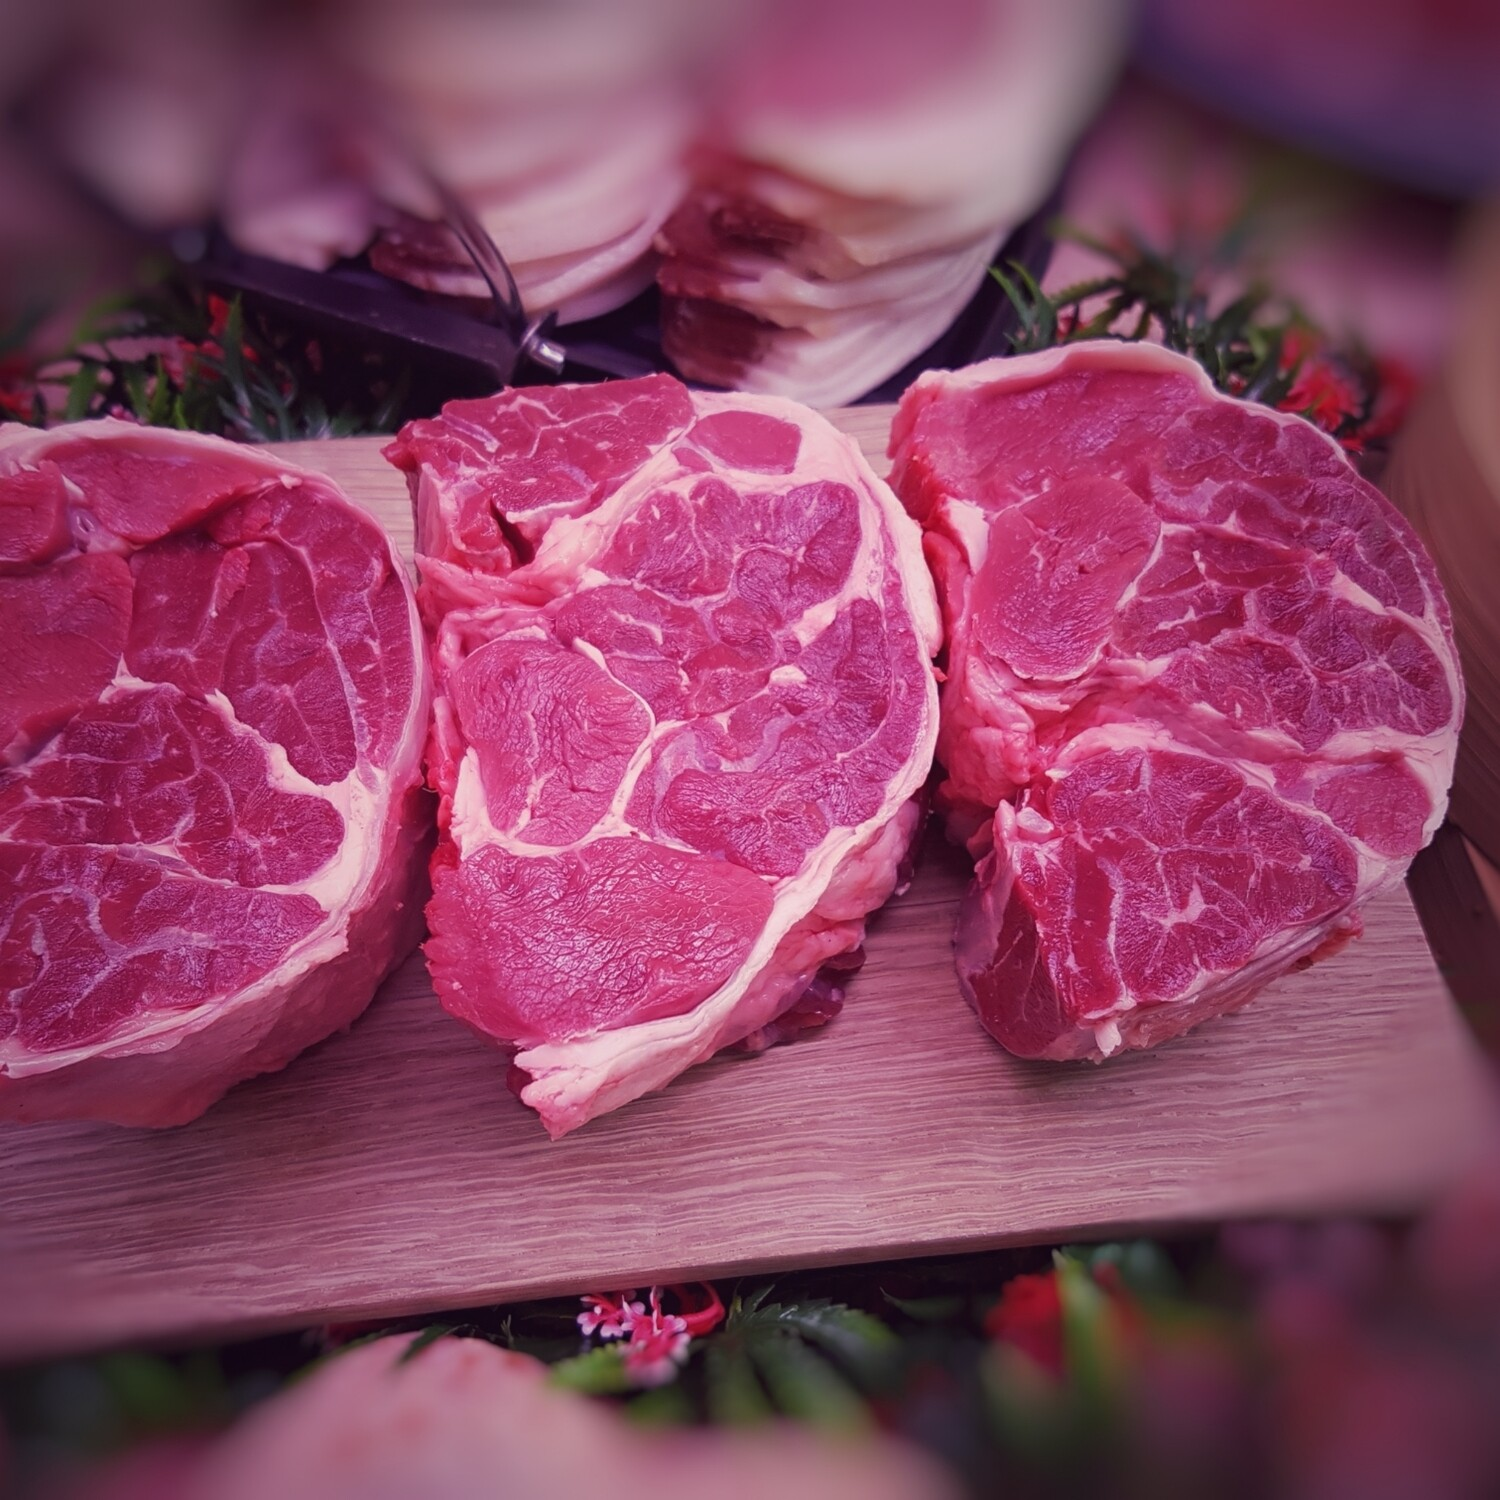 Dry Aged Shin of Beef